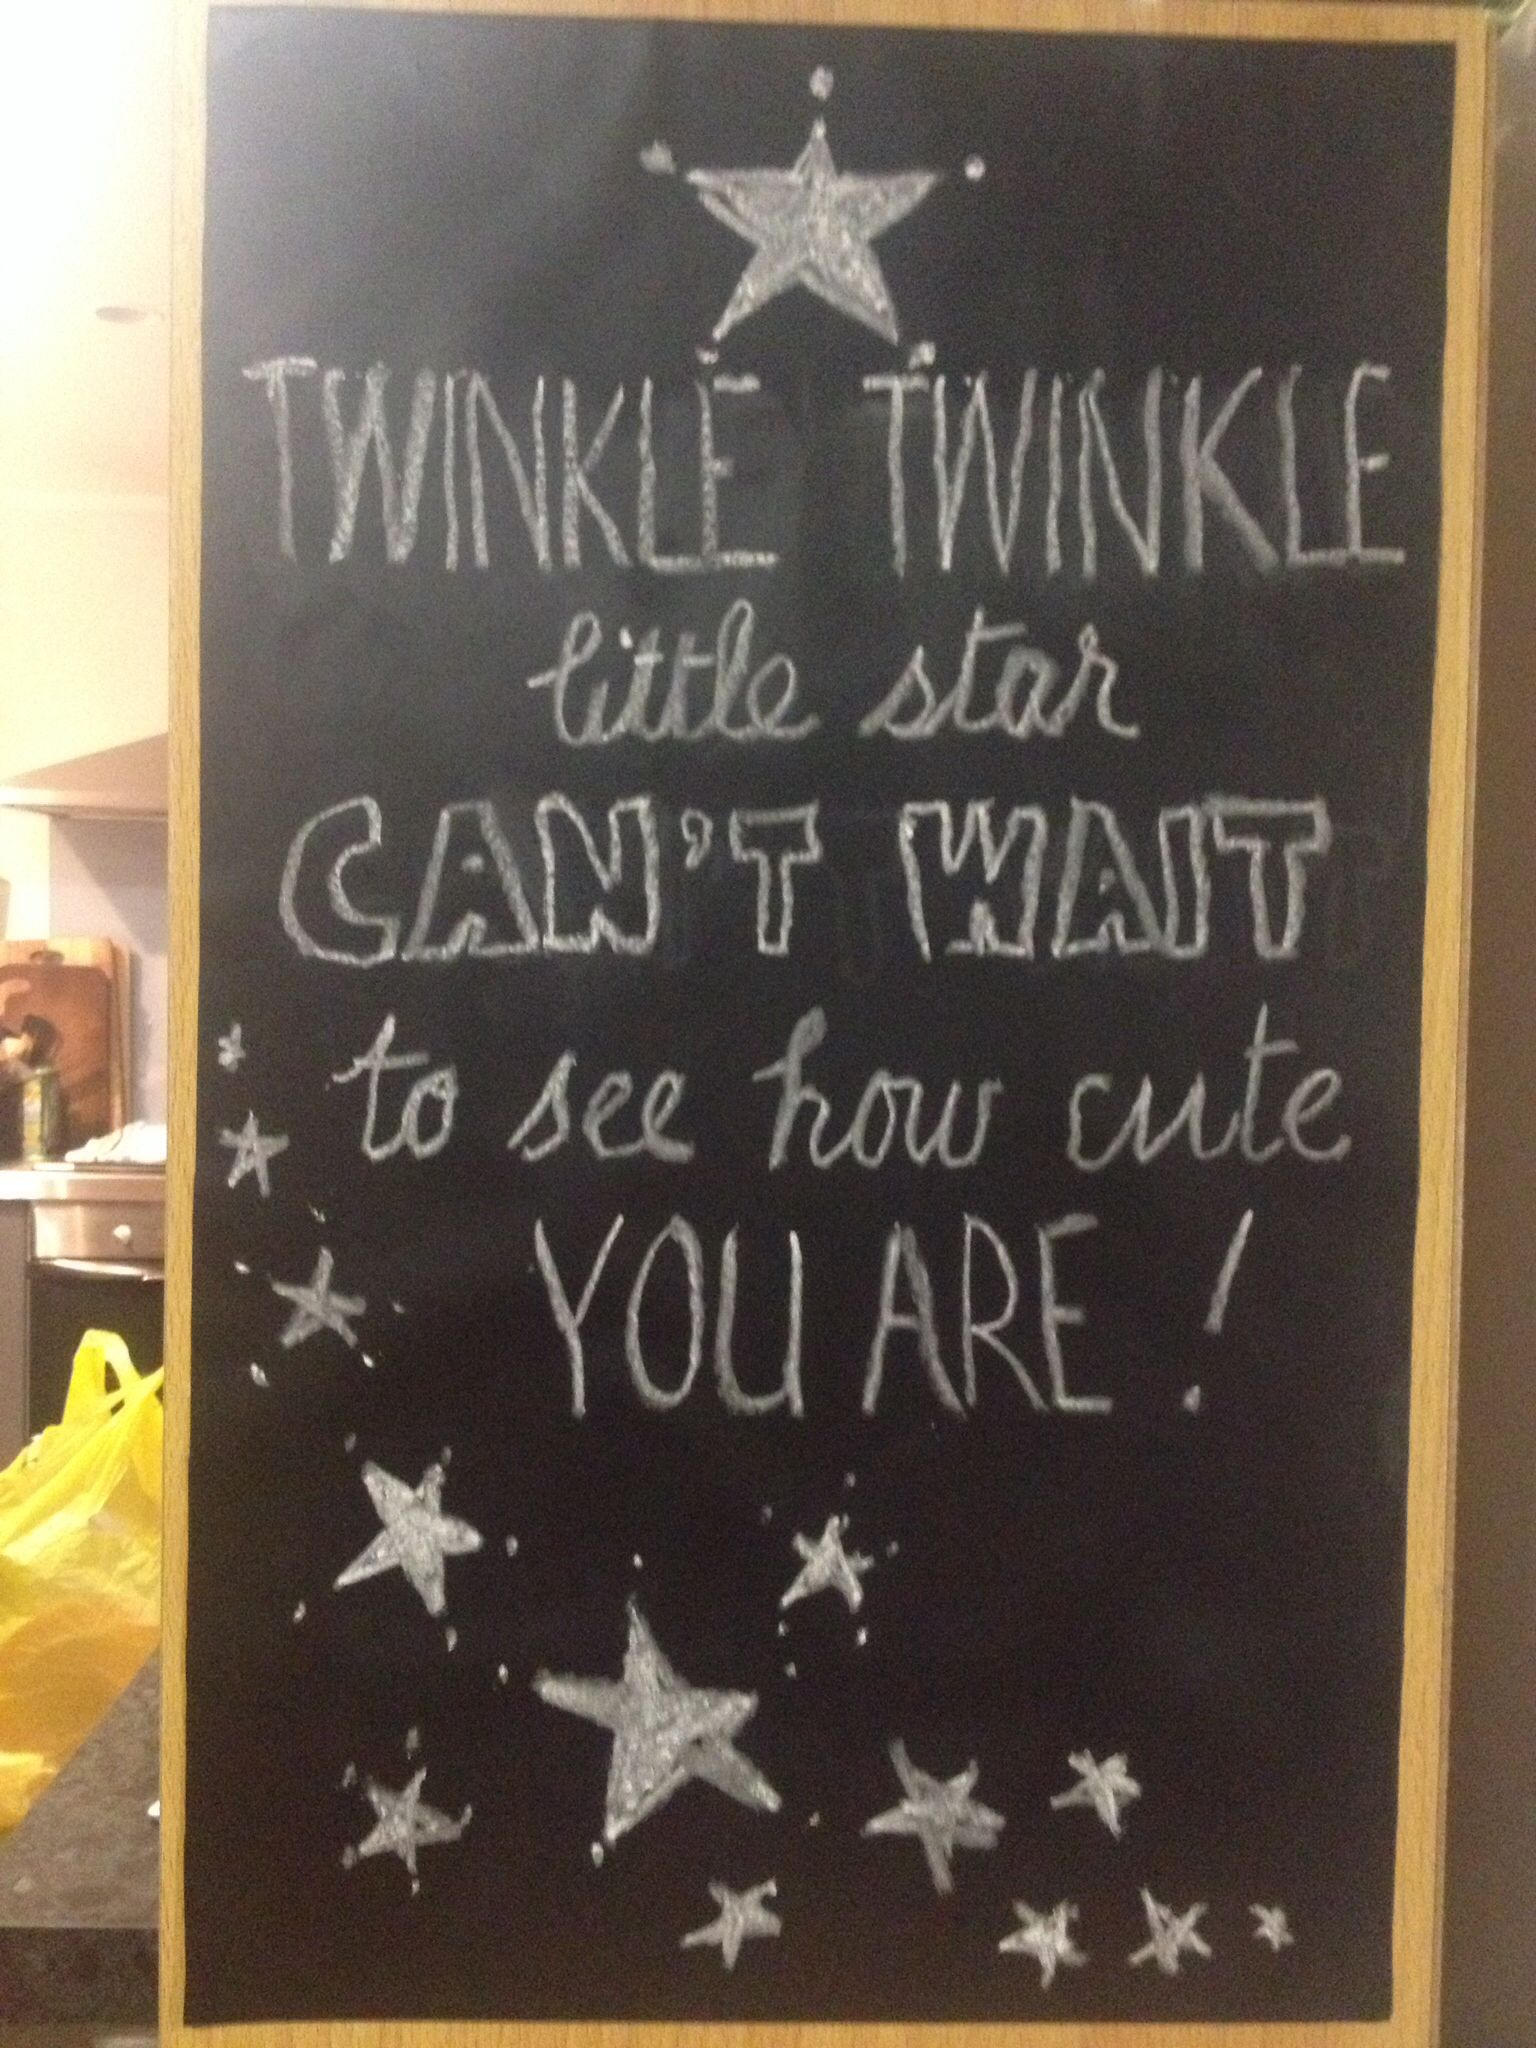 Pin By Kritika Sinhal On Theme It Baby Shower Baby Shower Quotes Twinkle Twinkle Baby Shower Moon Baby Shower